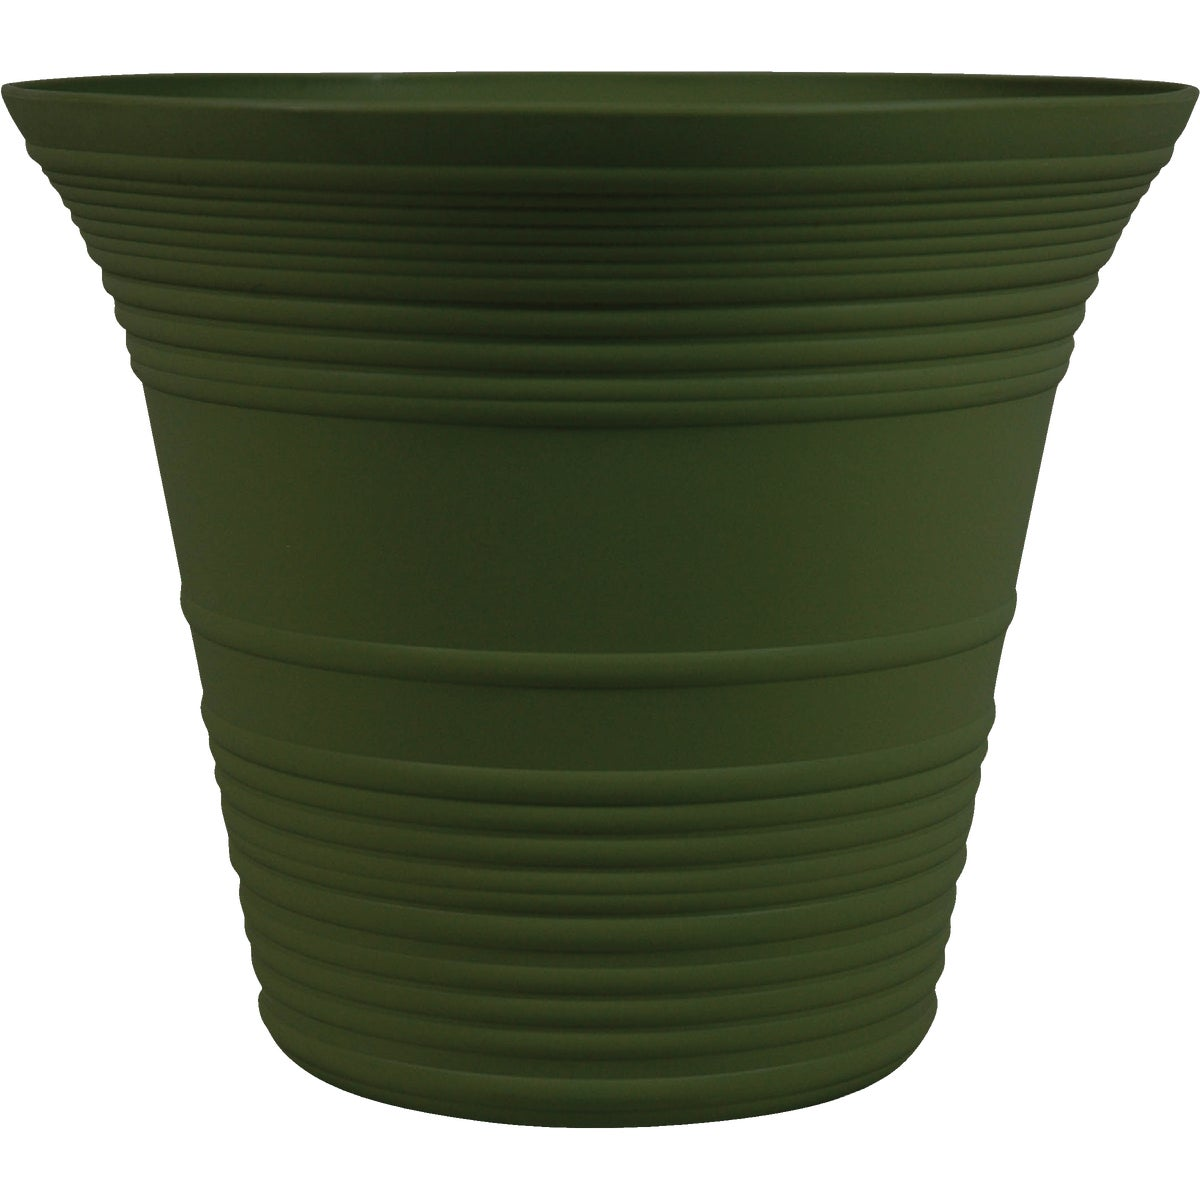 "9"" GREEN SEDONA PLNTER - SEA09001BB3 by Myers Industries Inc"